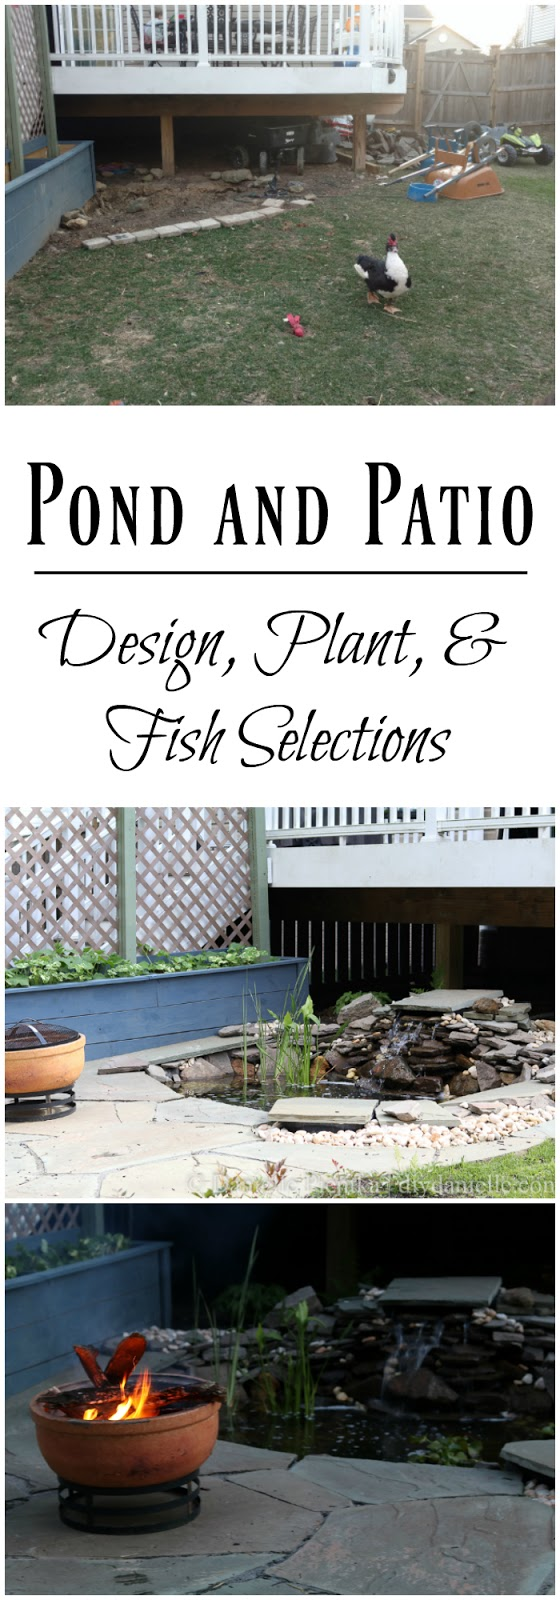 Gorgeous backyard pond setup with plant and fish choices explained.